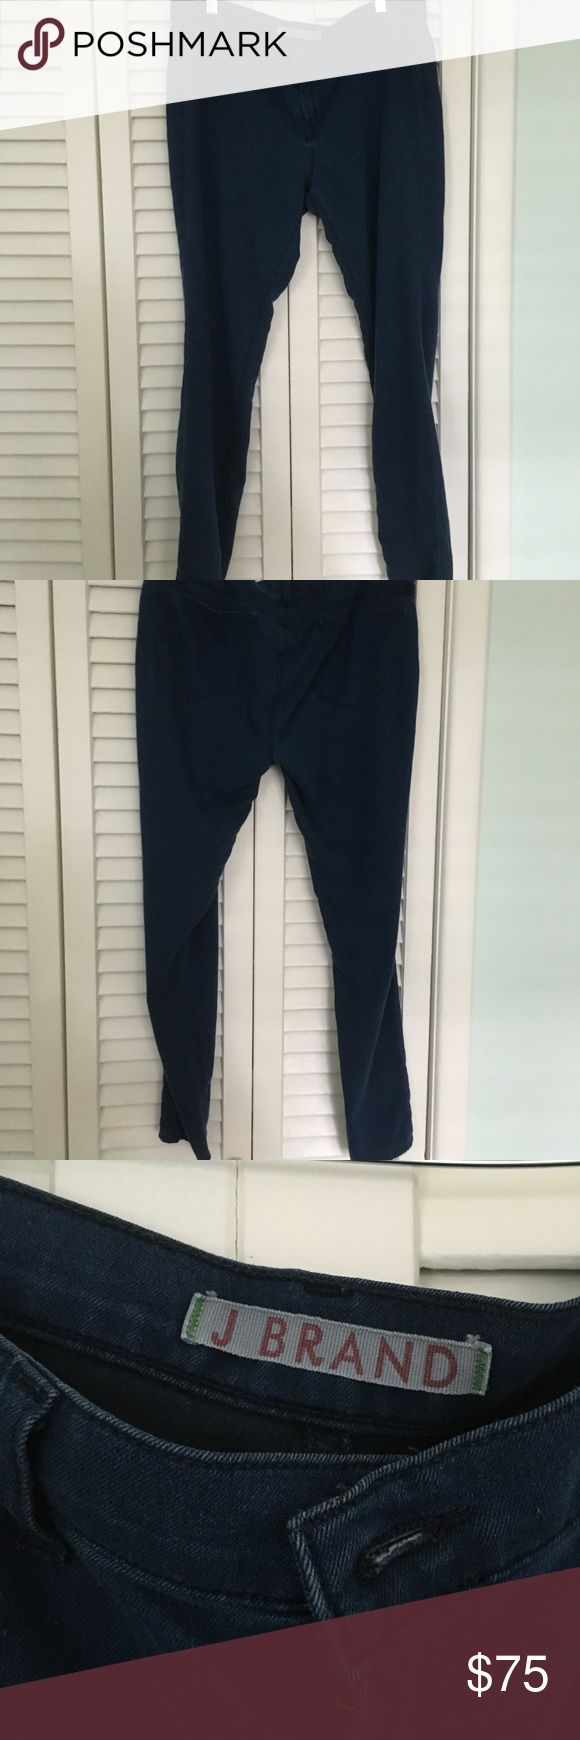 J Brand jeggings Ladies J Brand jeggings. Color Blue.  Size 32 perfect condition. 64 % cotton, 32 % polyester, 4 % Lycra J Brand Jeans